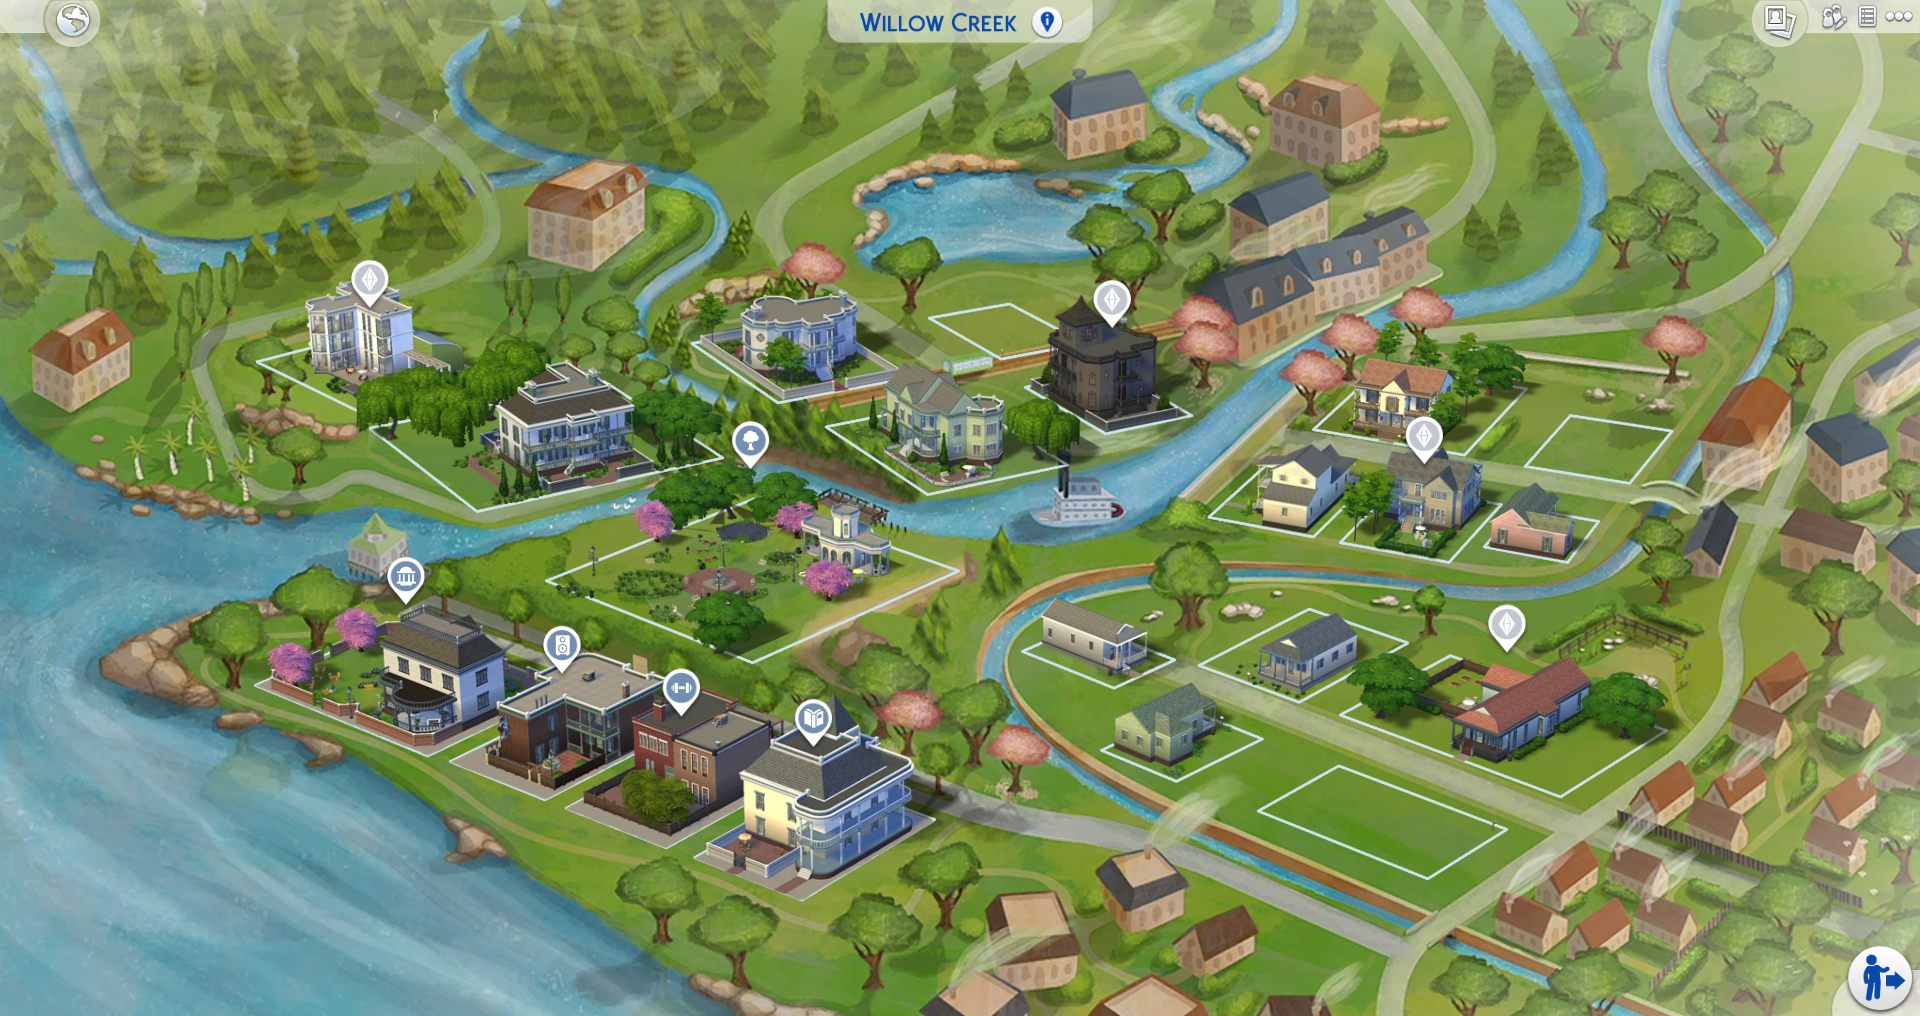 The Sims 4: World Map Replacements for ALL Worlds Now ... Map All World on usa map, us elevation map, all world continents, all the world, geographical map, two worlds map, national map, continents map, lds temple locations map, south america map, tour du mont blanc map, country map, main parts of a map, www.world map, asia map, australia map, google maps trinidad street map, metal map, india map, uk map,